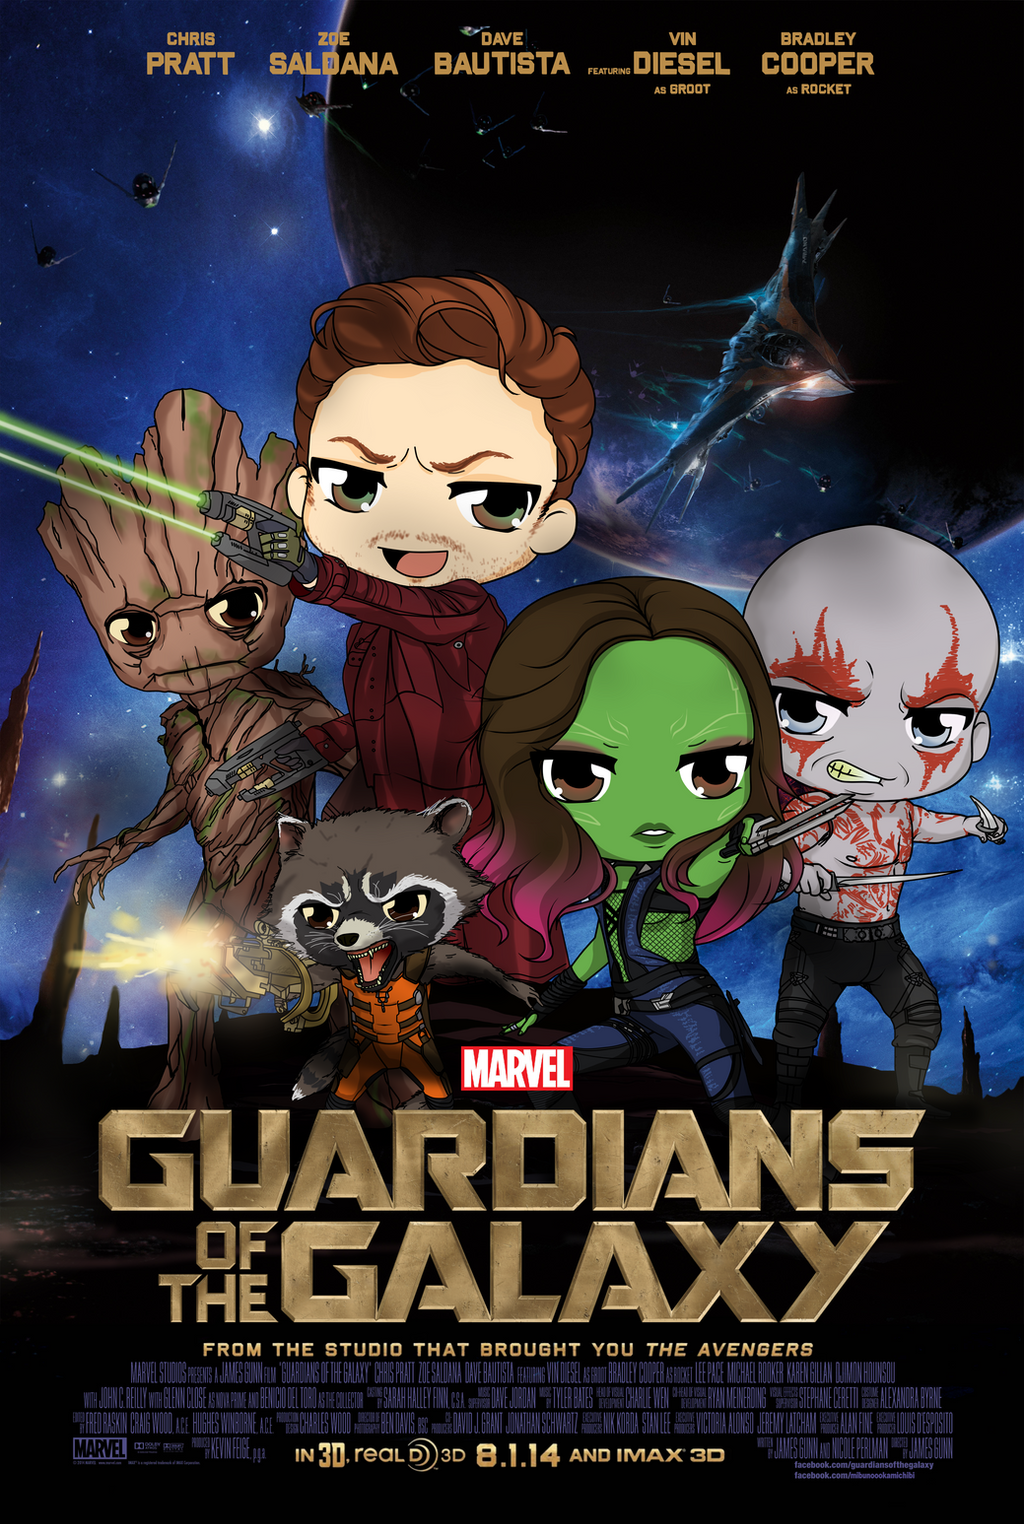 Guardians Of The Gallaxy - Chibi Poster by Mibu-no-ookami